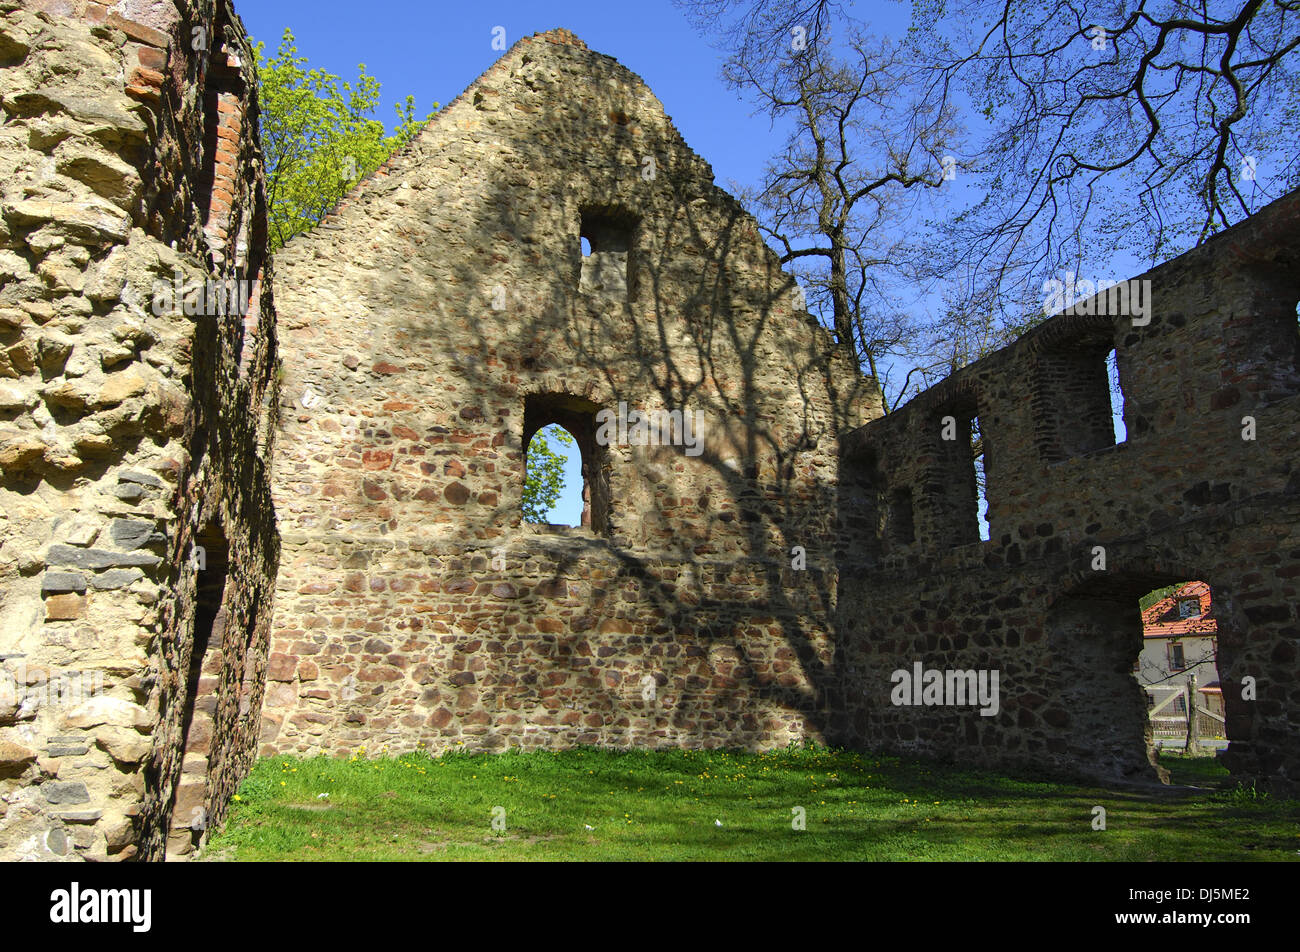 Ruins of a monastry - Stock Image